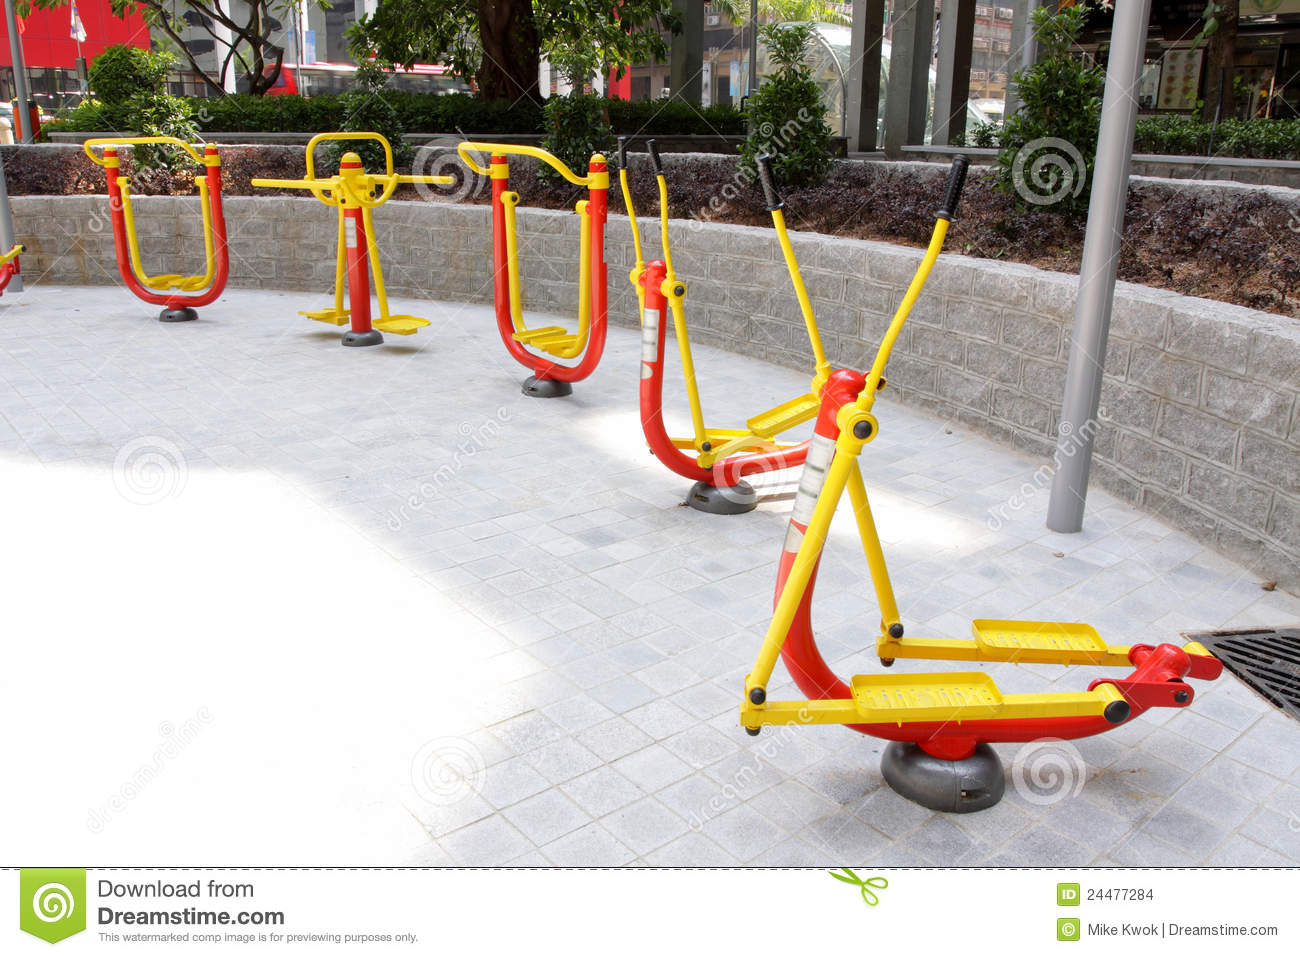 Outdoor Fitness Equipment : Outdoor exercise equipment stock photo image of trainer